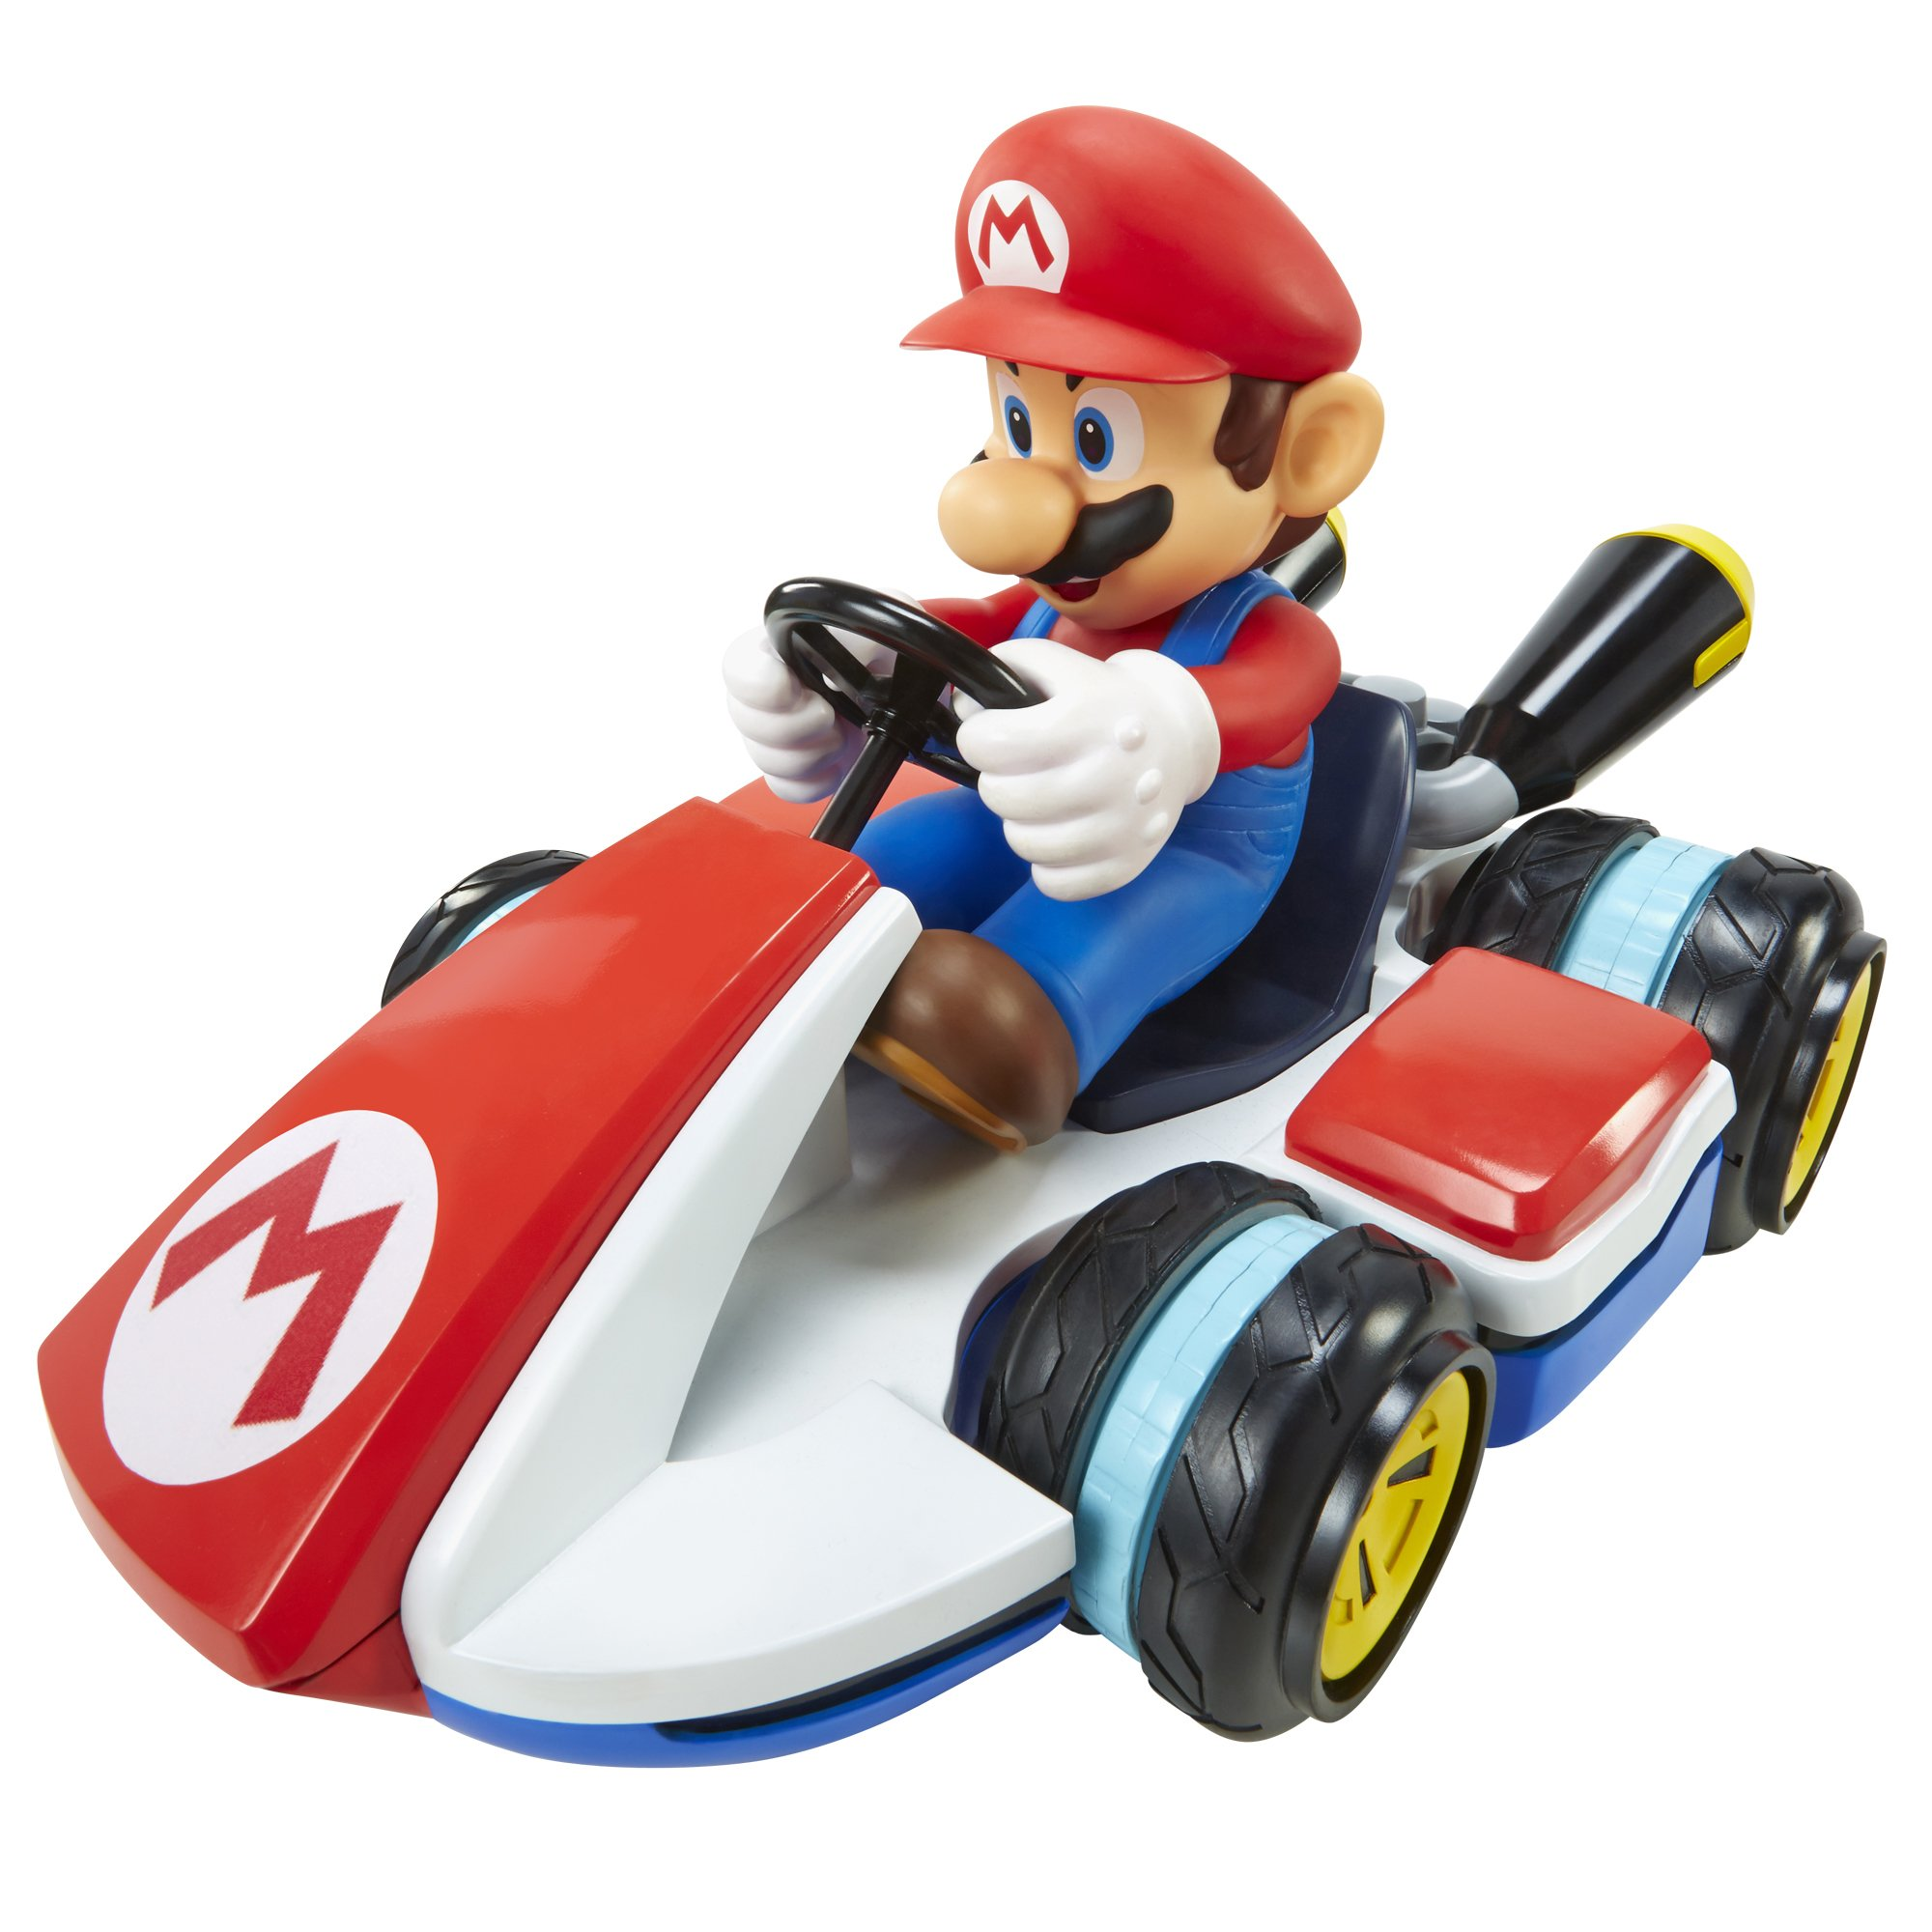 NINTENDO Super Mario Kart 8 Mario Anti-Gravity Mini RC Racer 2.4Ghz by Nintendo (Image #11)